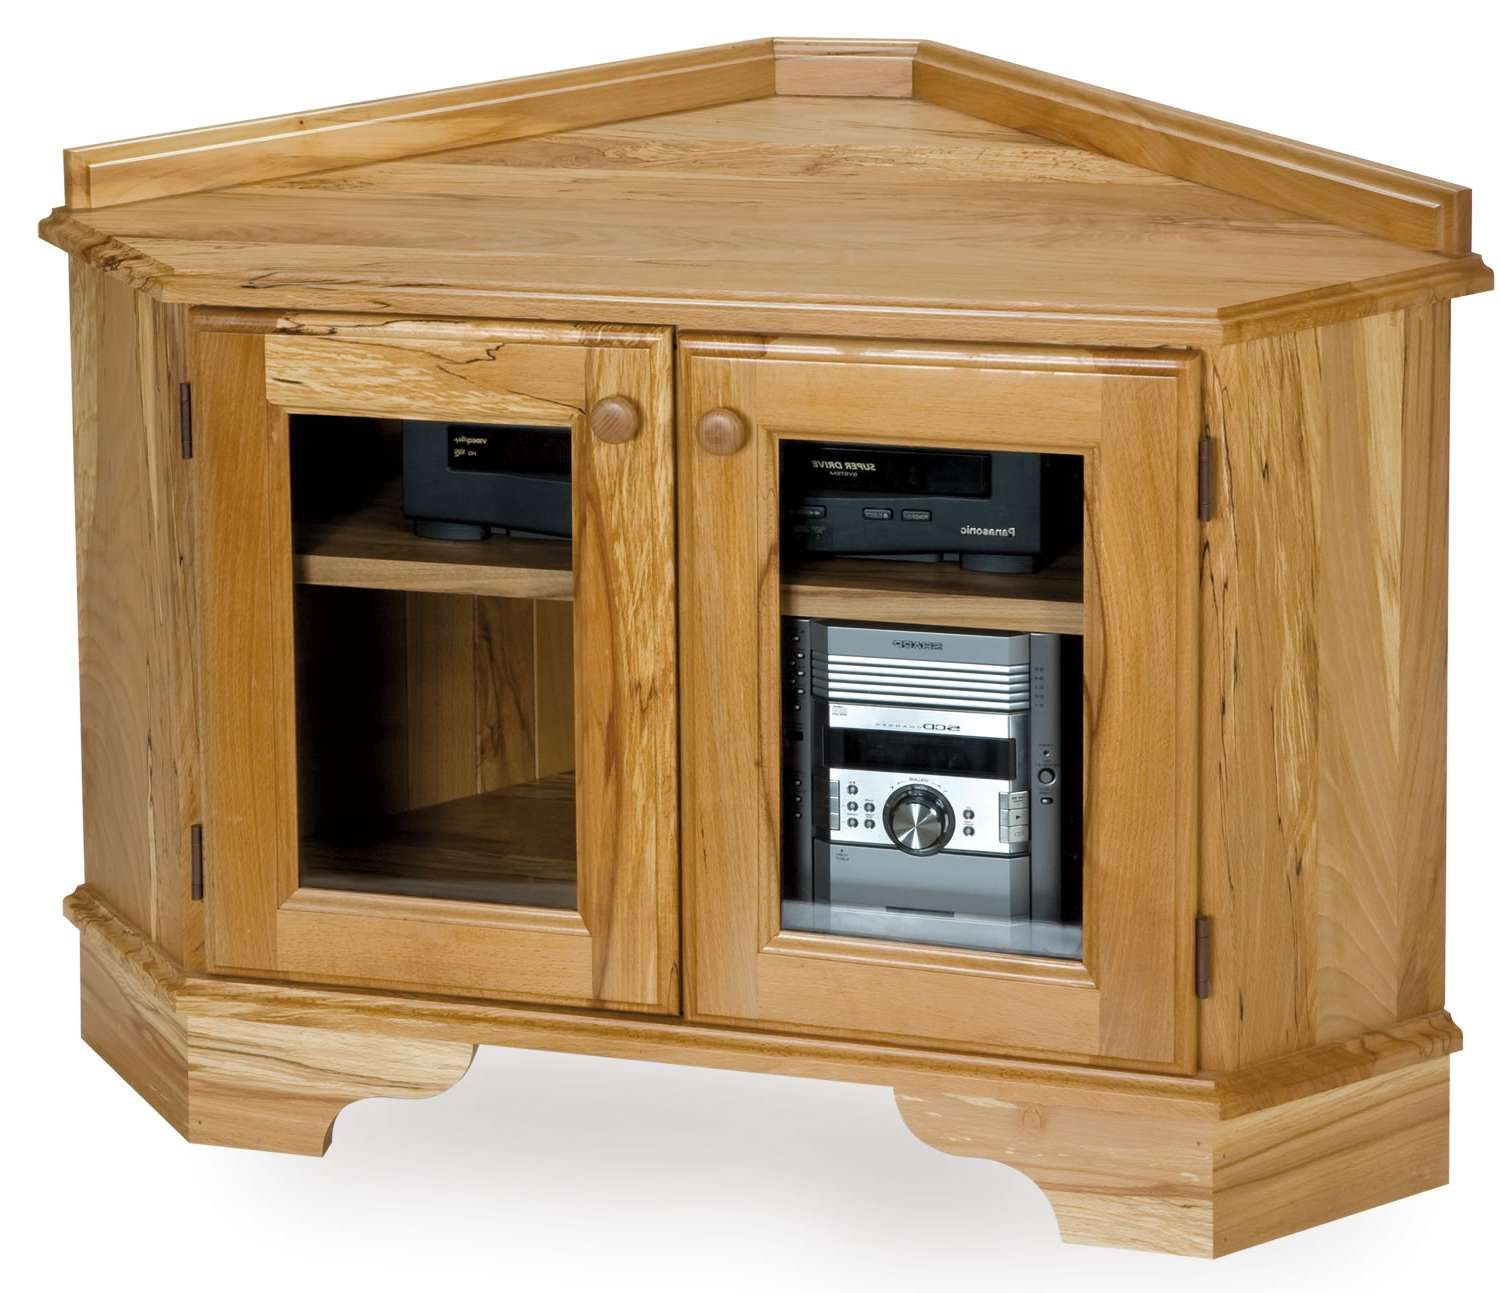 Solid Wood Tv Cabinet With Doors – Seeshiningstars Intended For Solid Wood Corner Tv Stands (View 17 of 20)